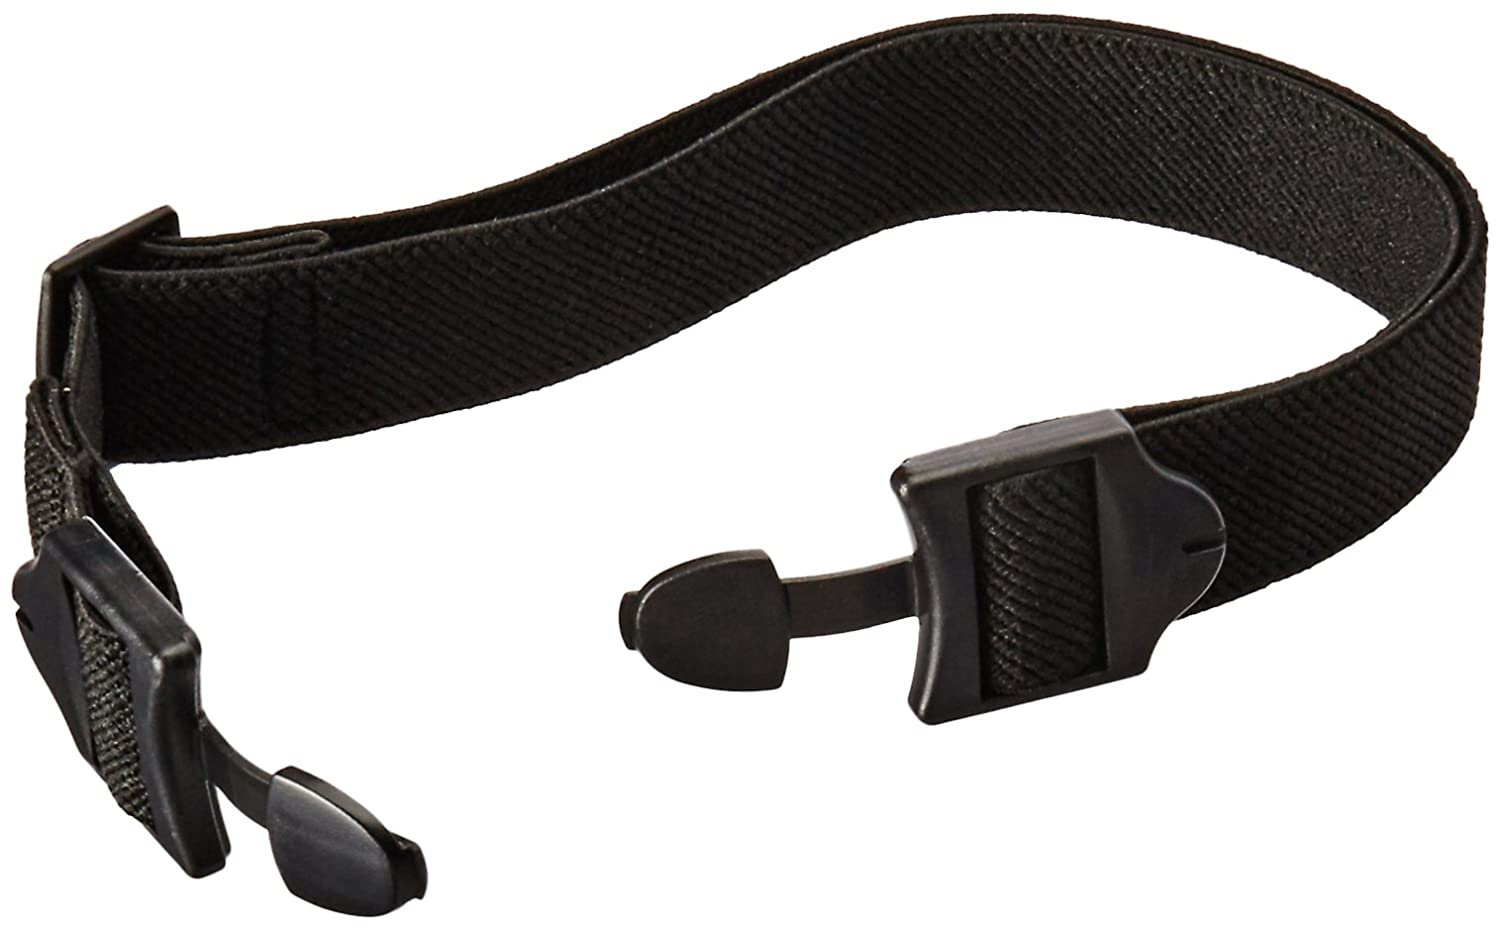 Garmin 305 armband replacement